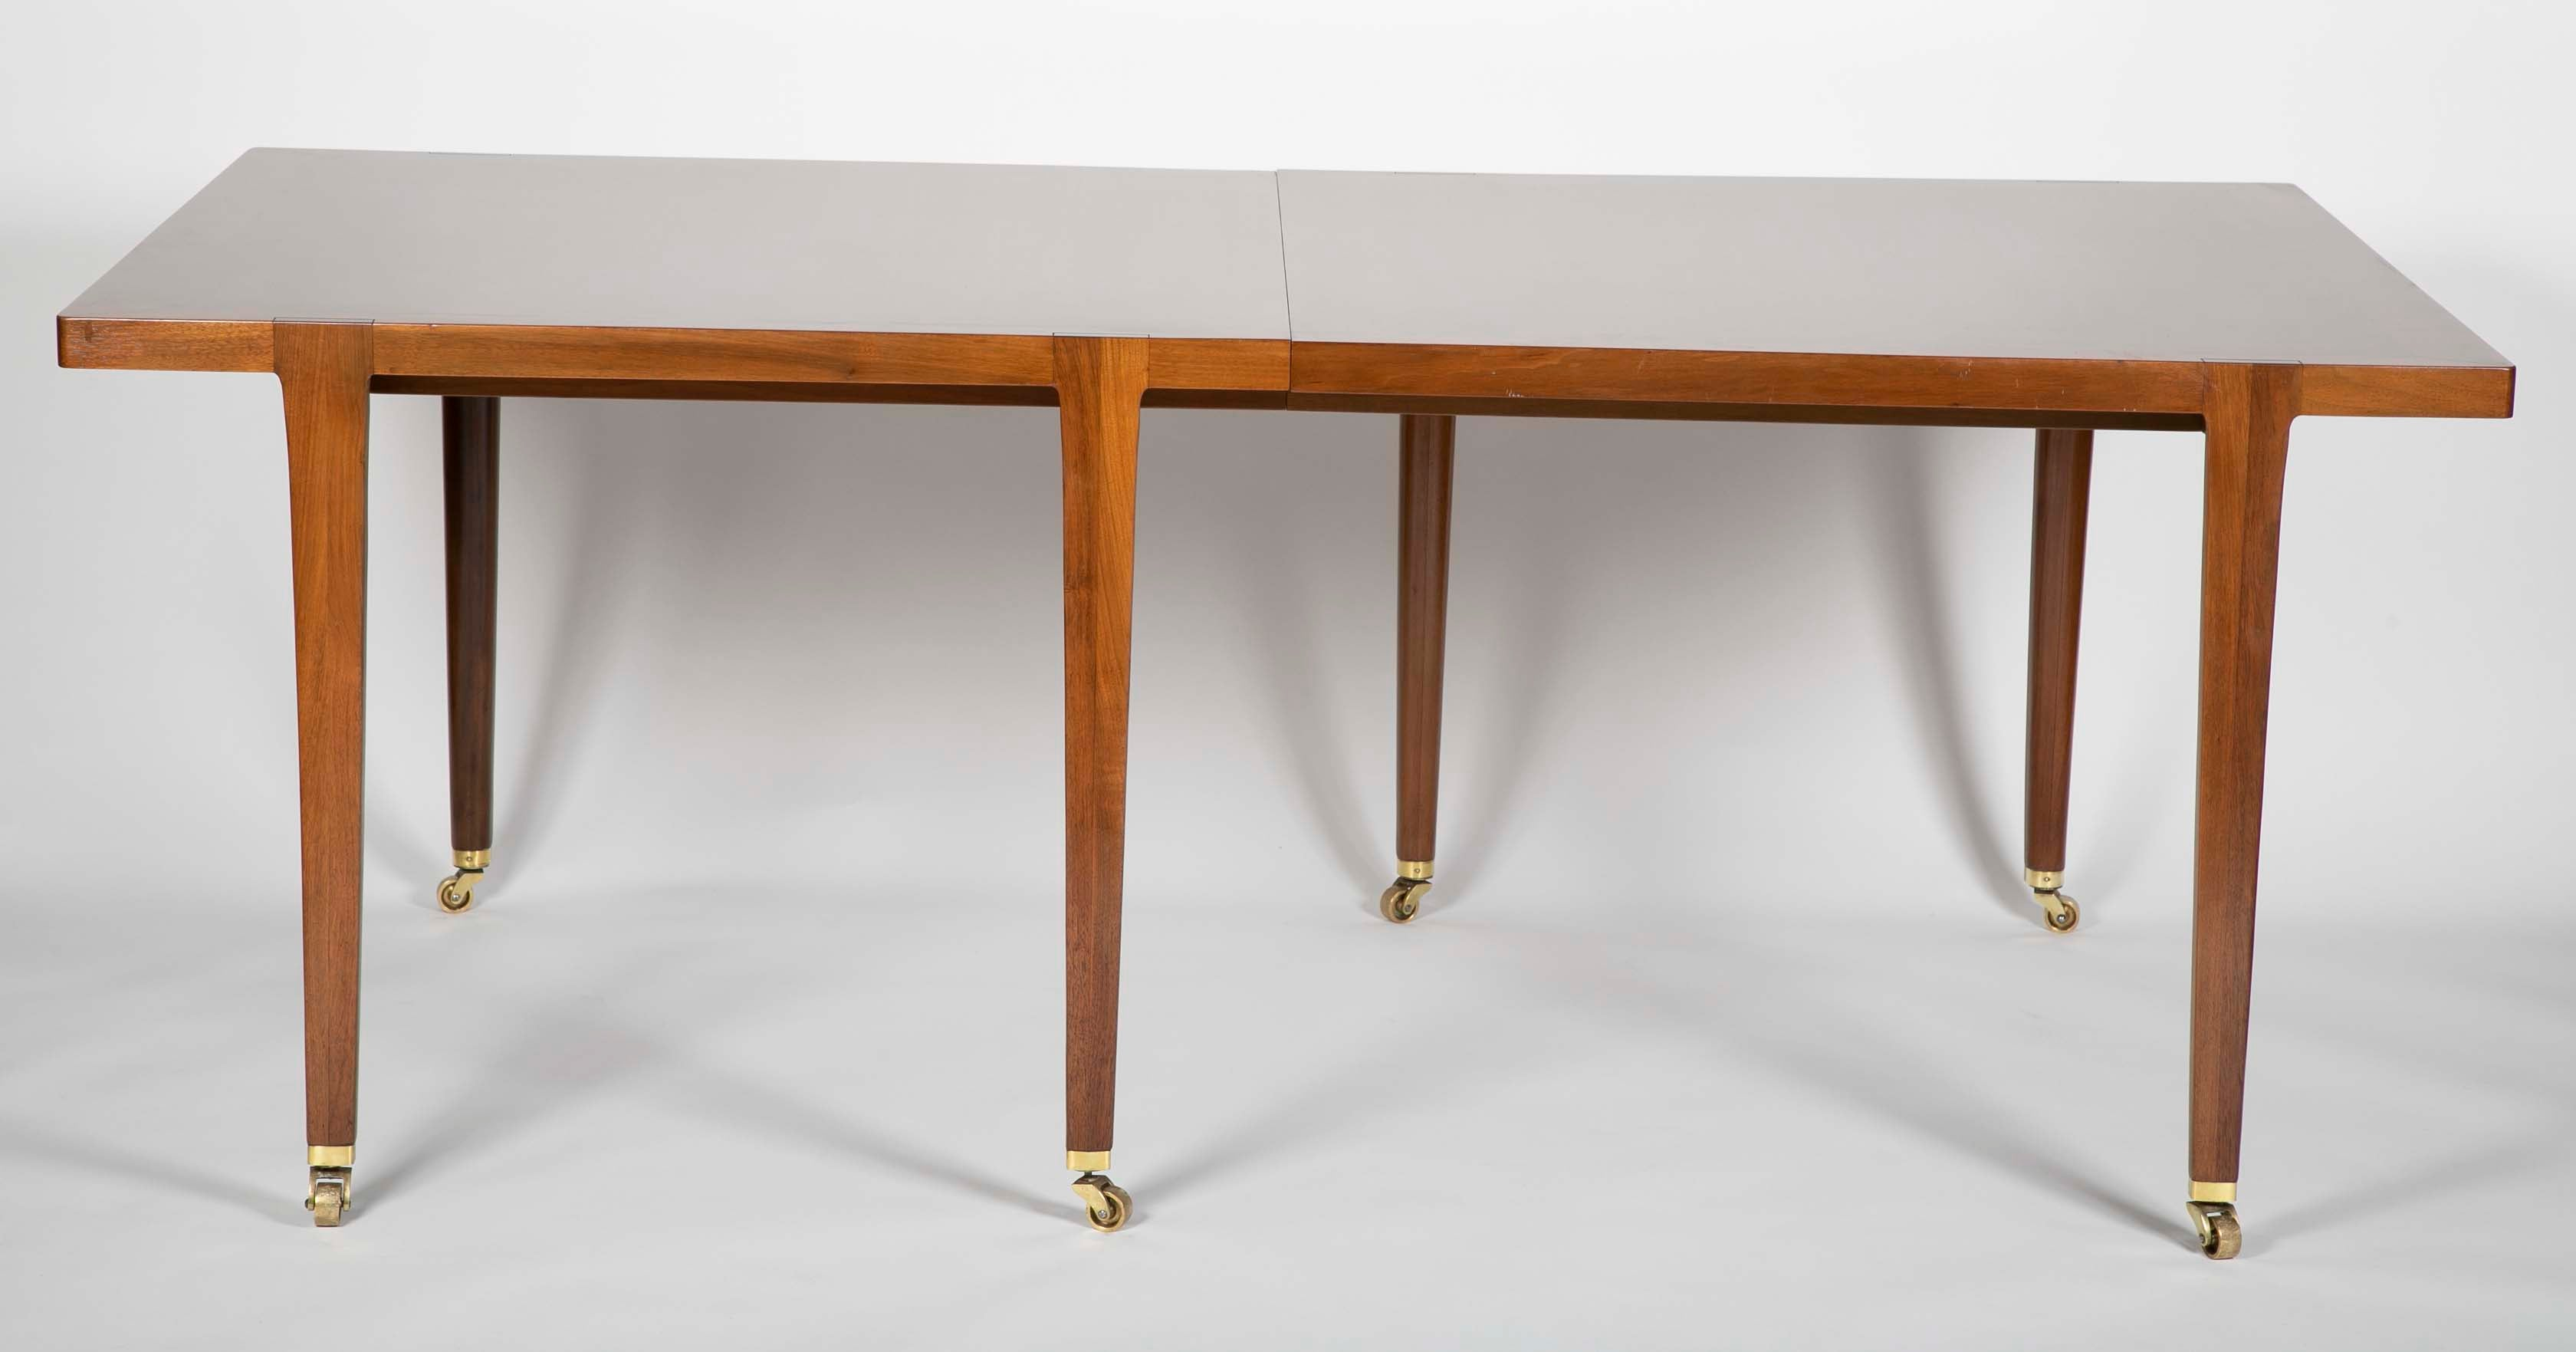 A Dining or Conference Table by Edward Wormley for Dunbar Furniture